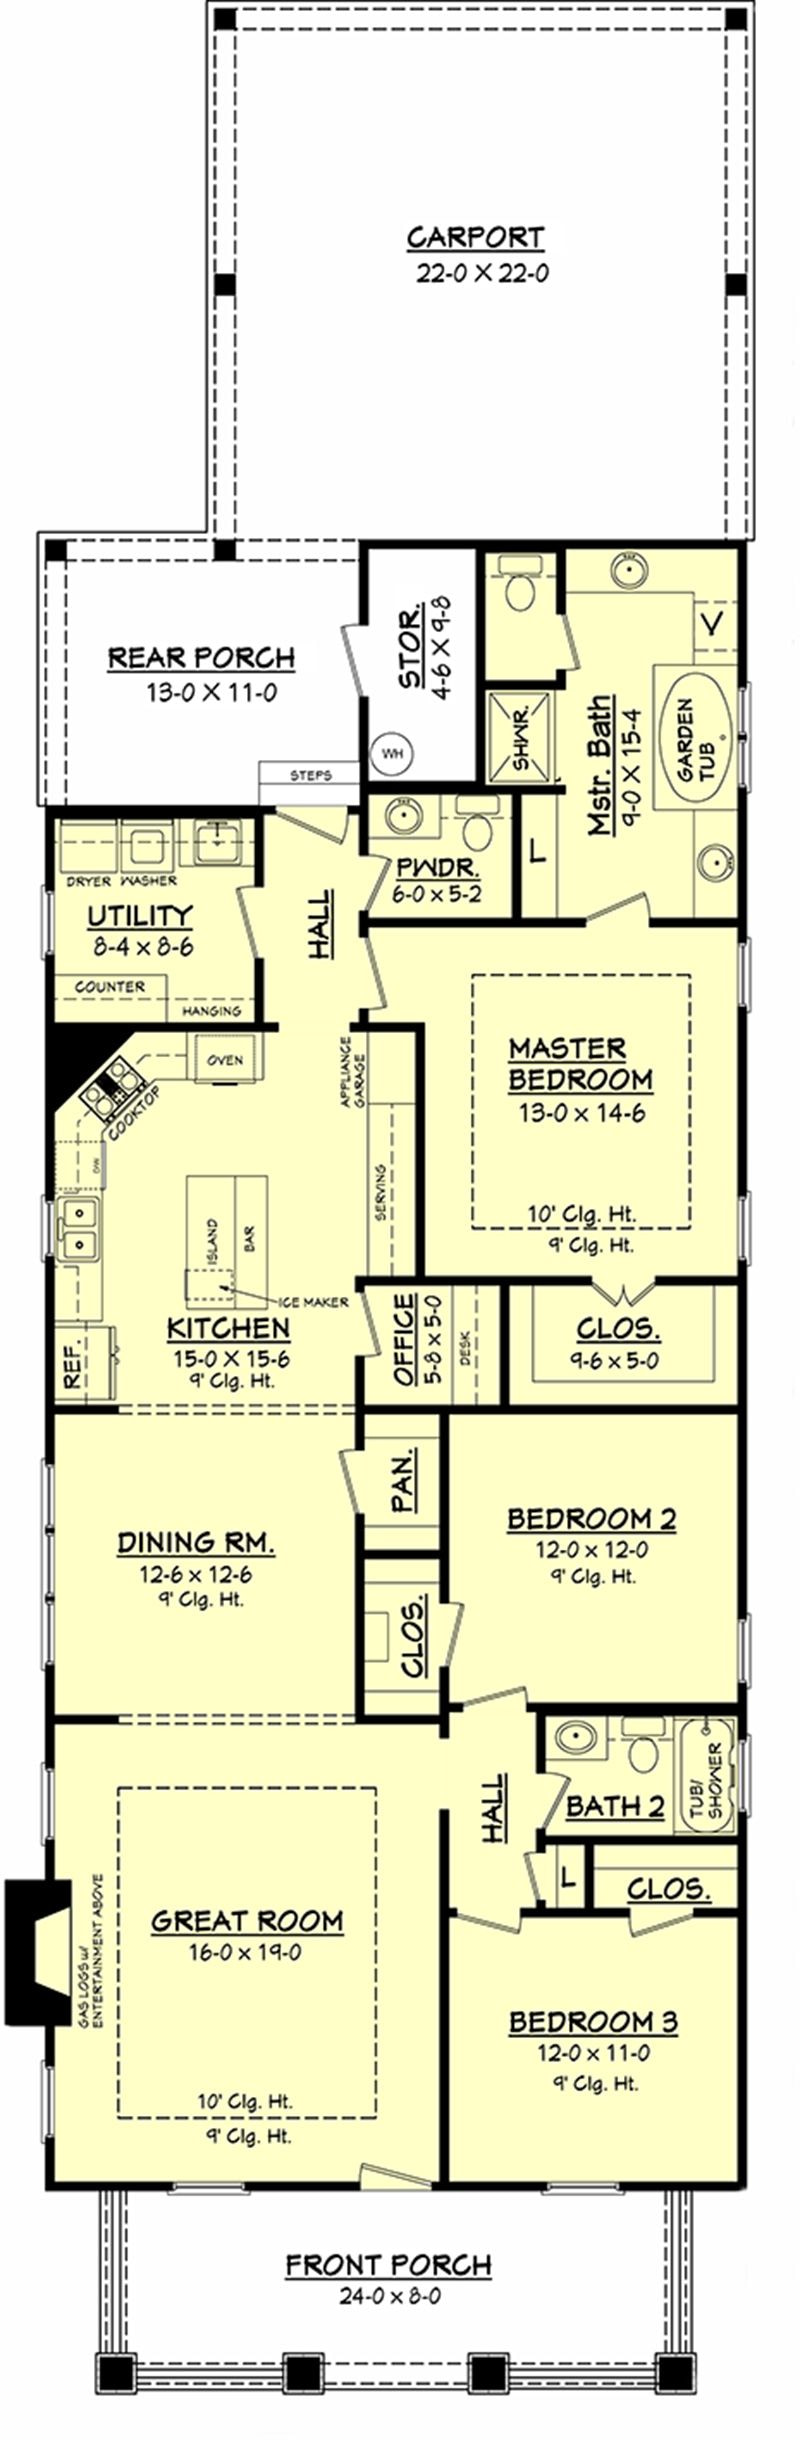 Cottage House Plan - 3 Bedrms, 2.5 Baths - 1800 Sq Ft for Small One Level Farmhouse Plans